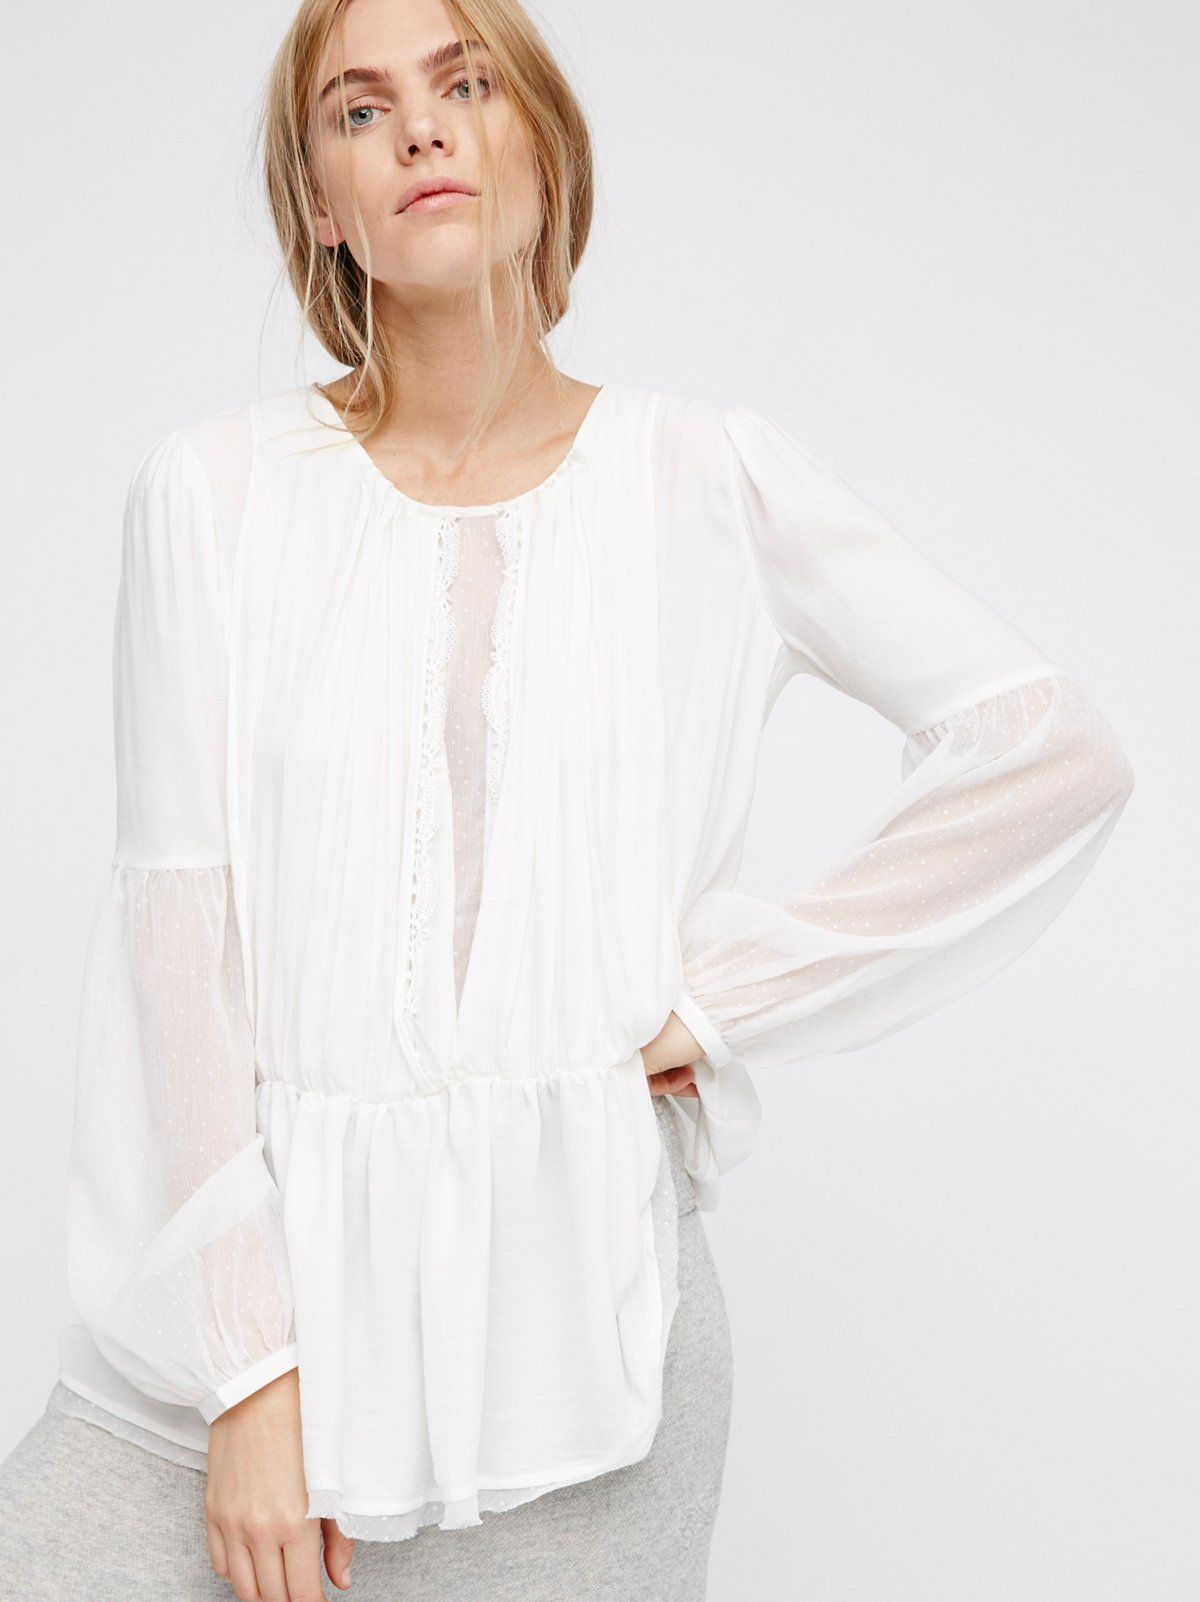 Soul Serene Top | Victorian-inspired blouse in an effortless silhouette with an overlay in front featuring a scalloped crochet trim and an open back. Pieced with sheer dotted fabric down the front, on the sleeves, and the hem.